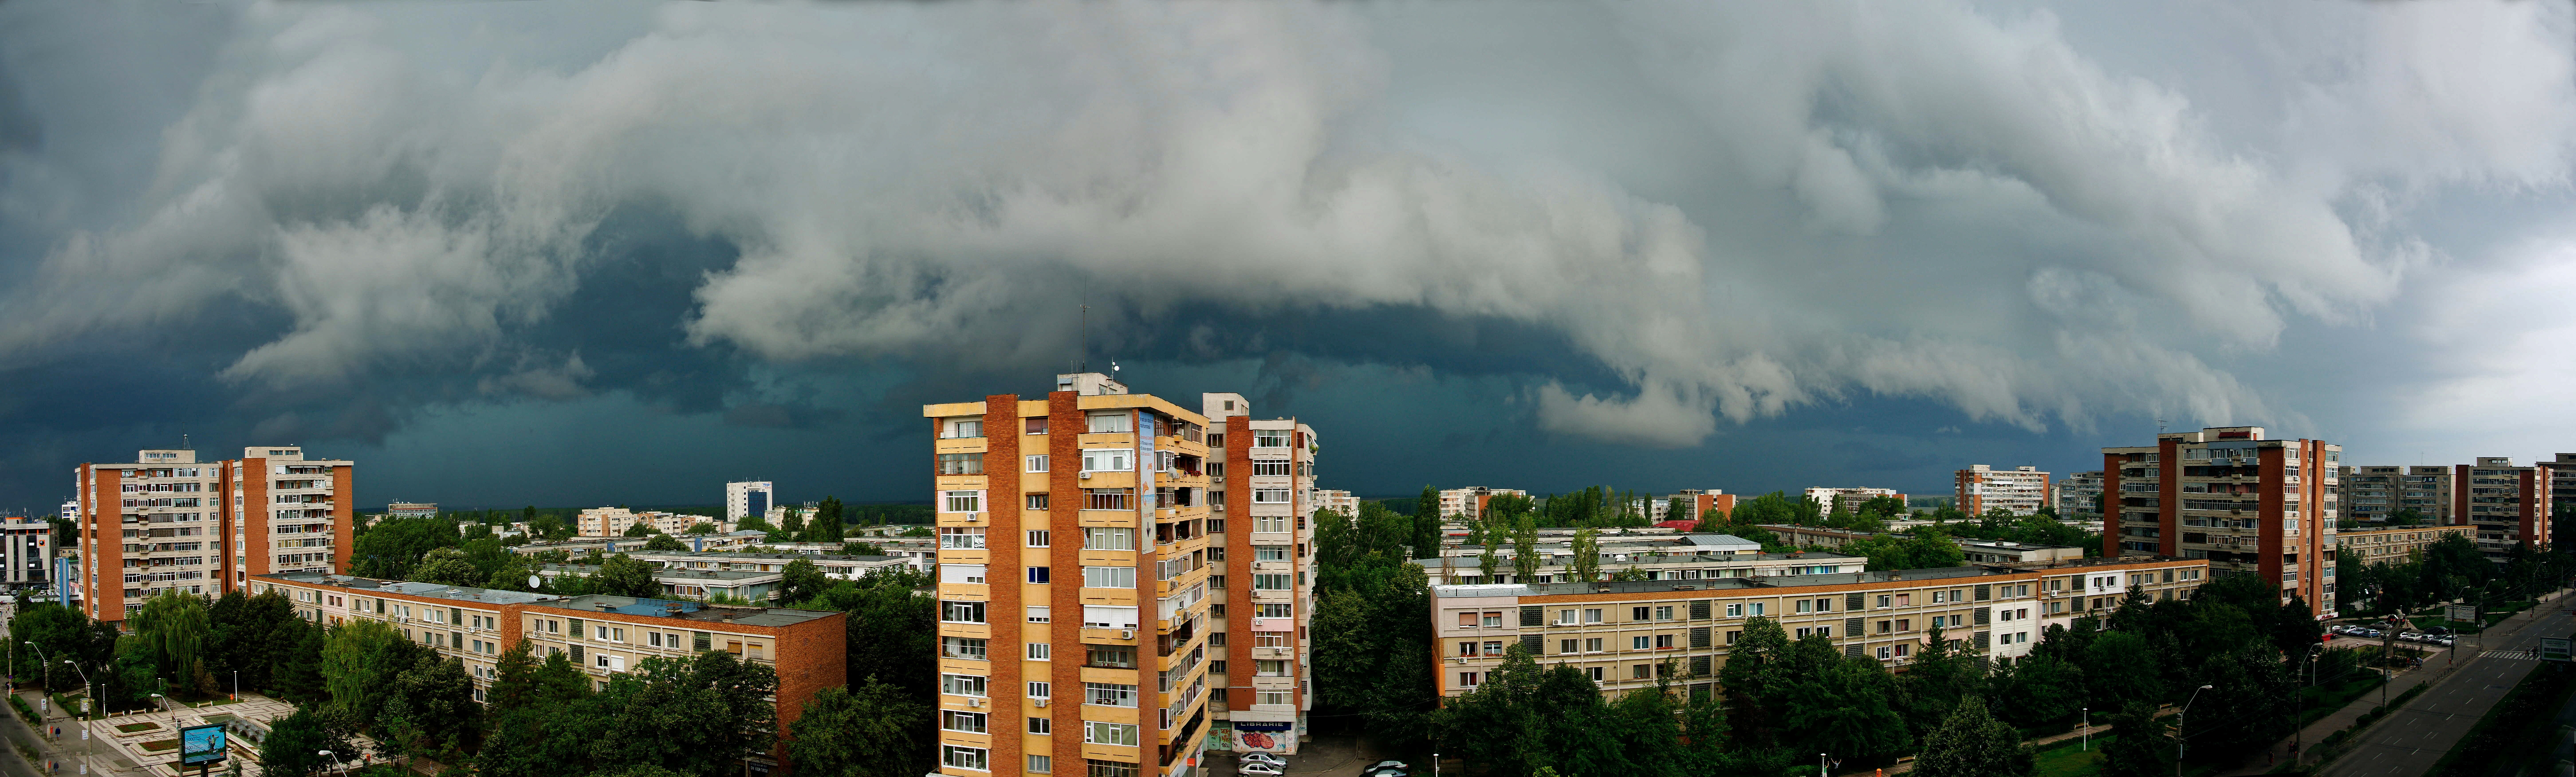 FileAttention PANORAMA With Storm Clouds From GALATI